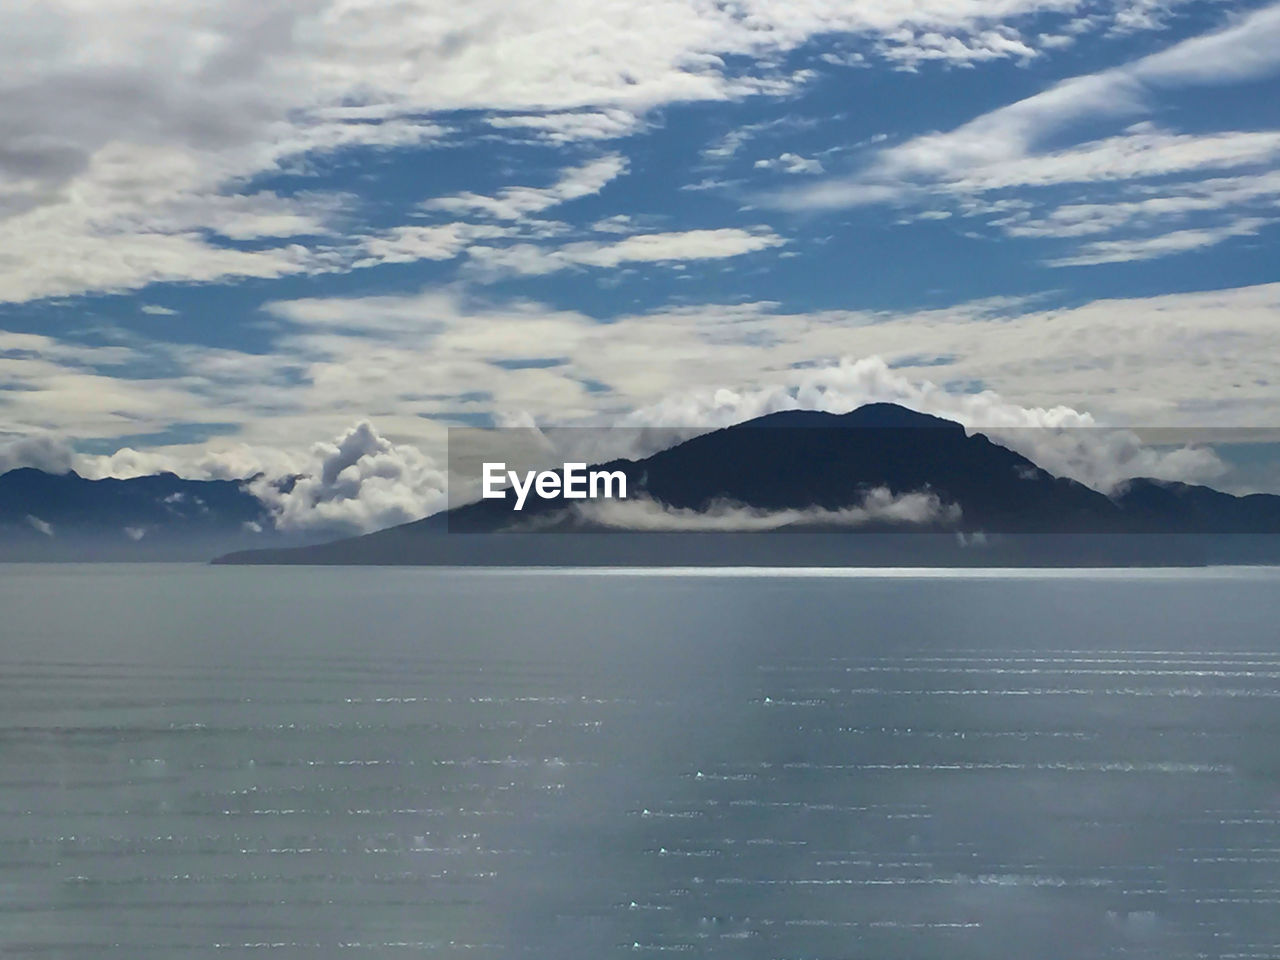 SCENIC VIEW OF SEA BY SNOWCAPPED MOUNTAINS AGAINST SKY